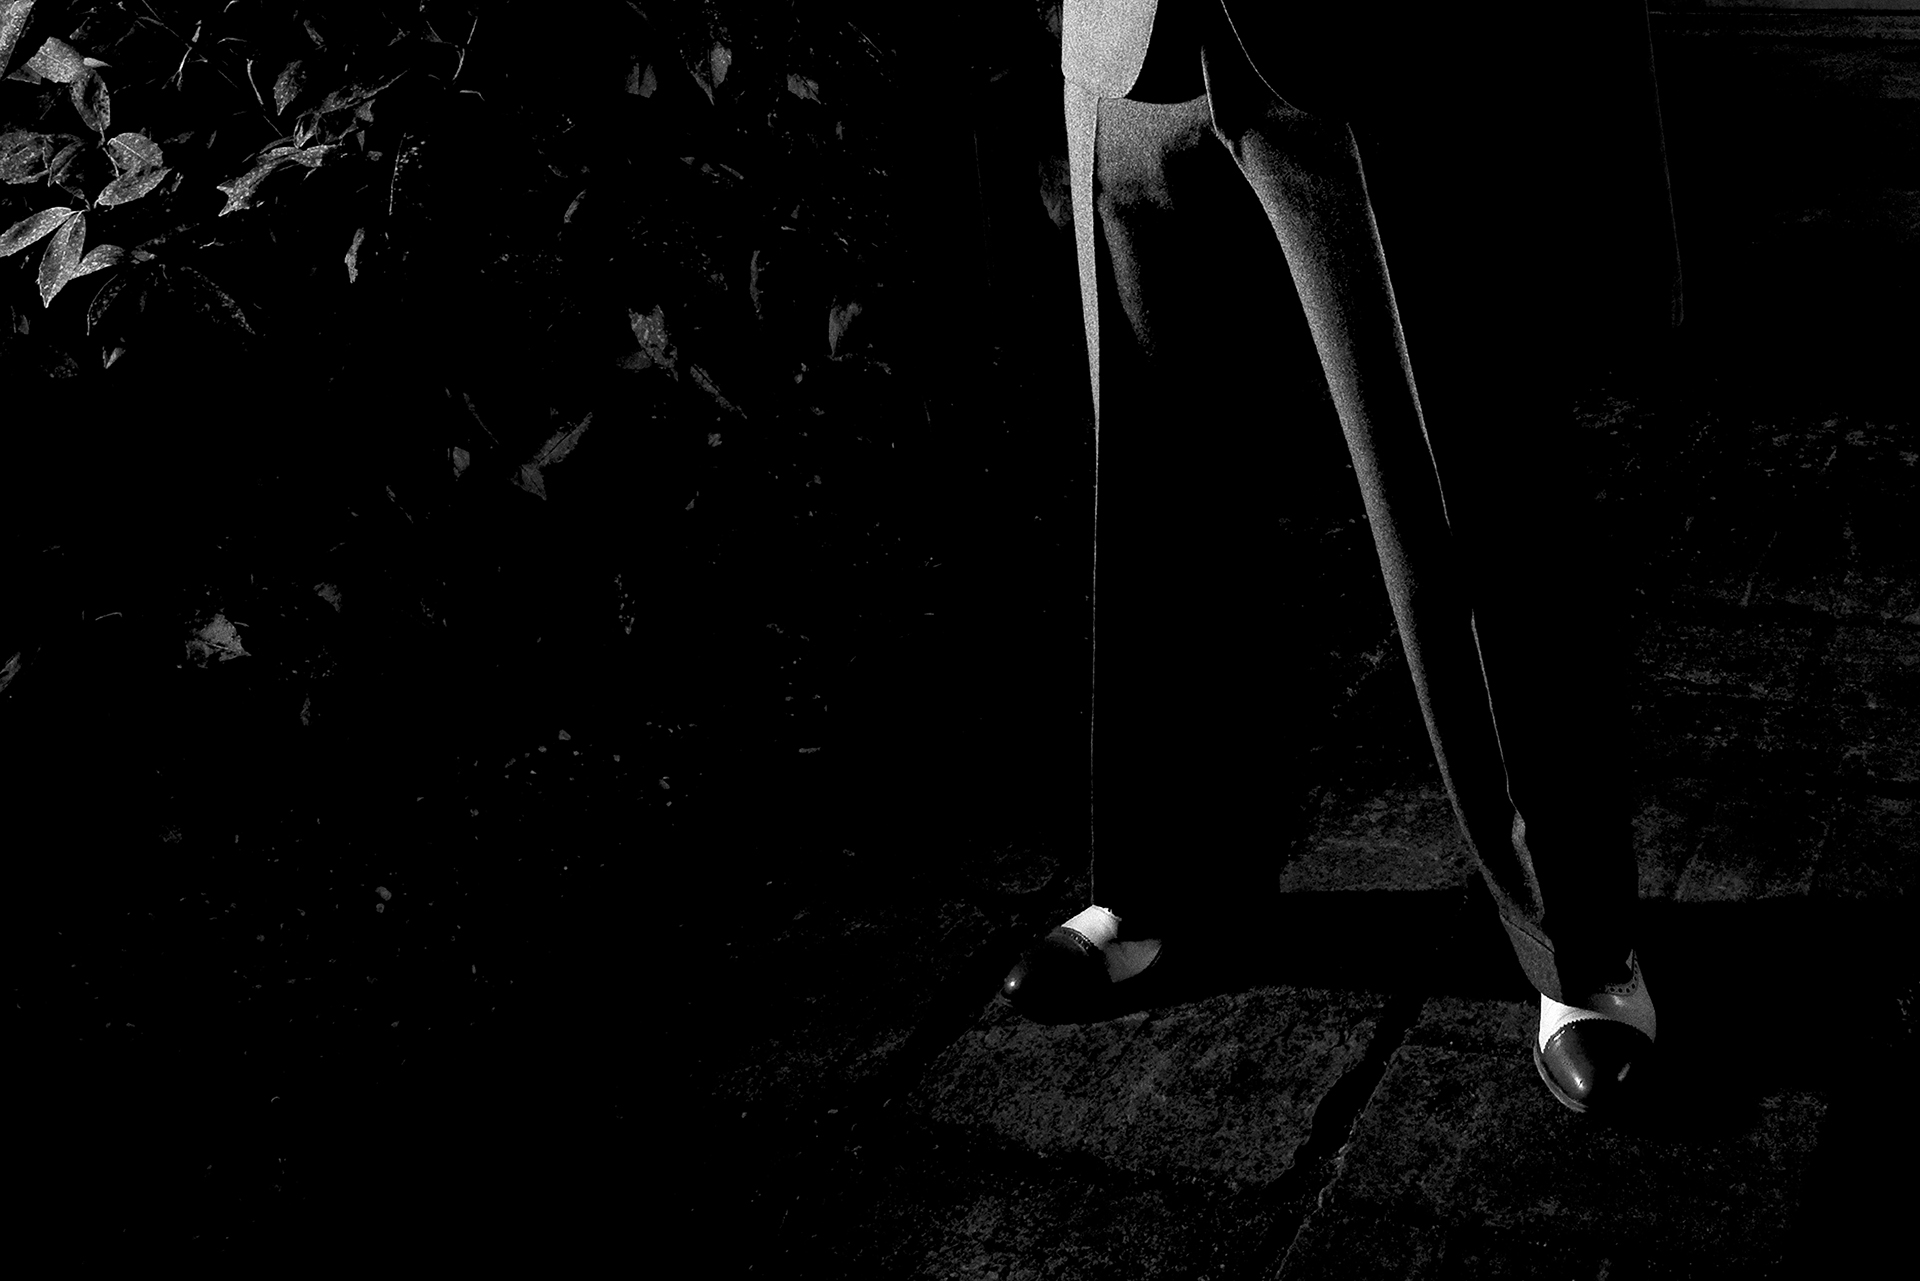 Out of the Moonlight | film noir | Robert van der Ree Photography